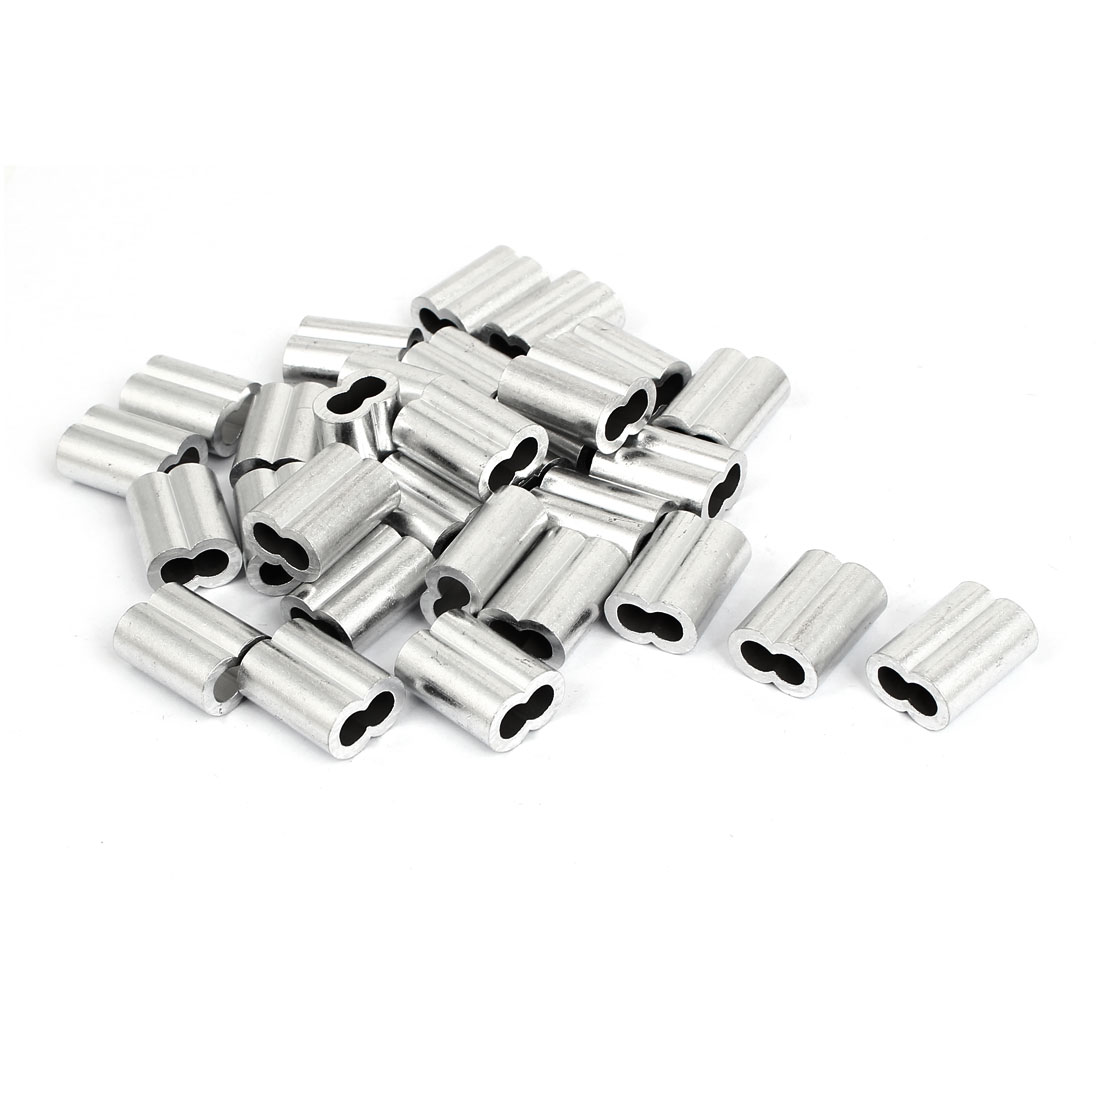 "Double Hole Aluminum Sleeves Silver Tone 30 Pcs for 3/16"" Wire Rope"